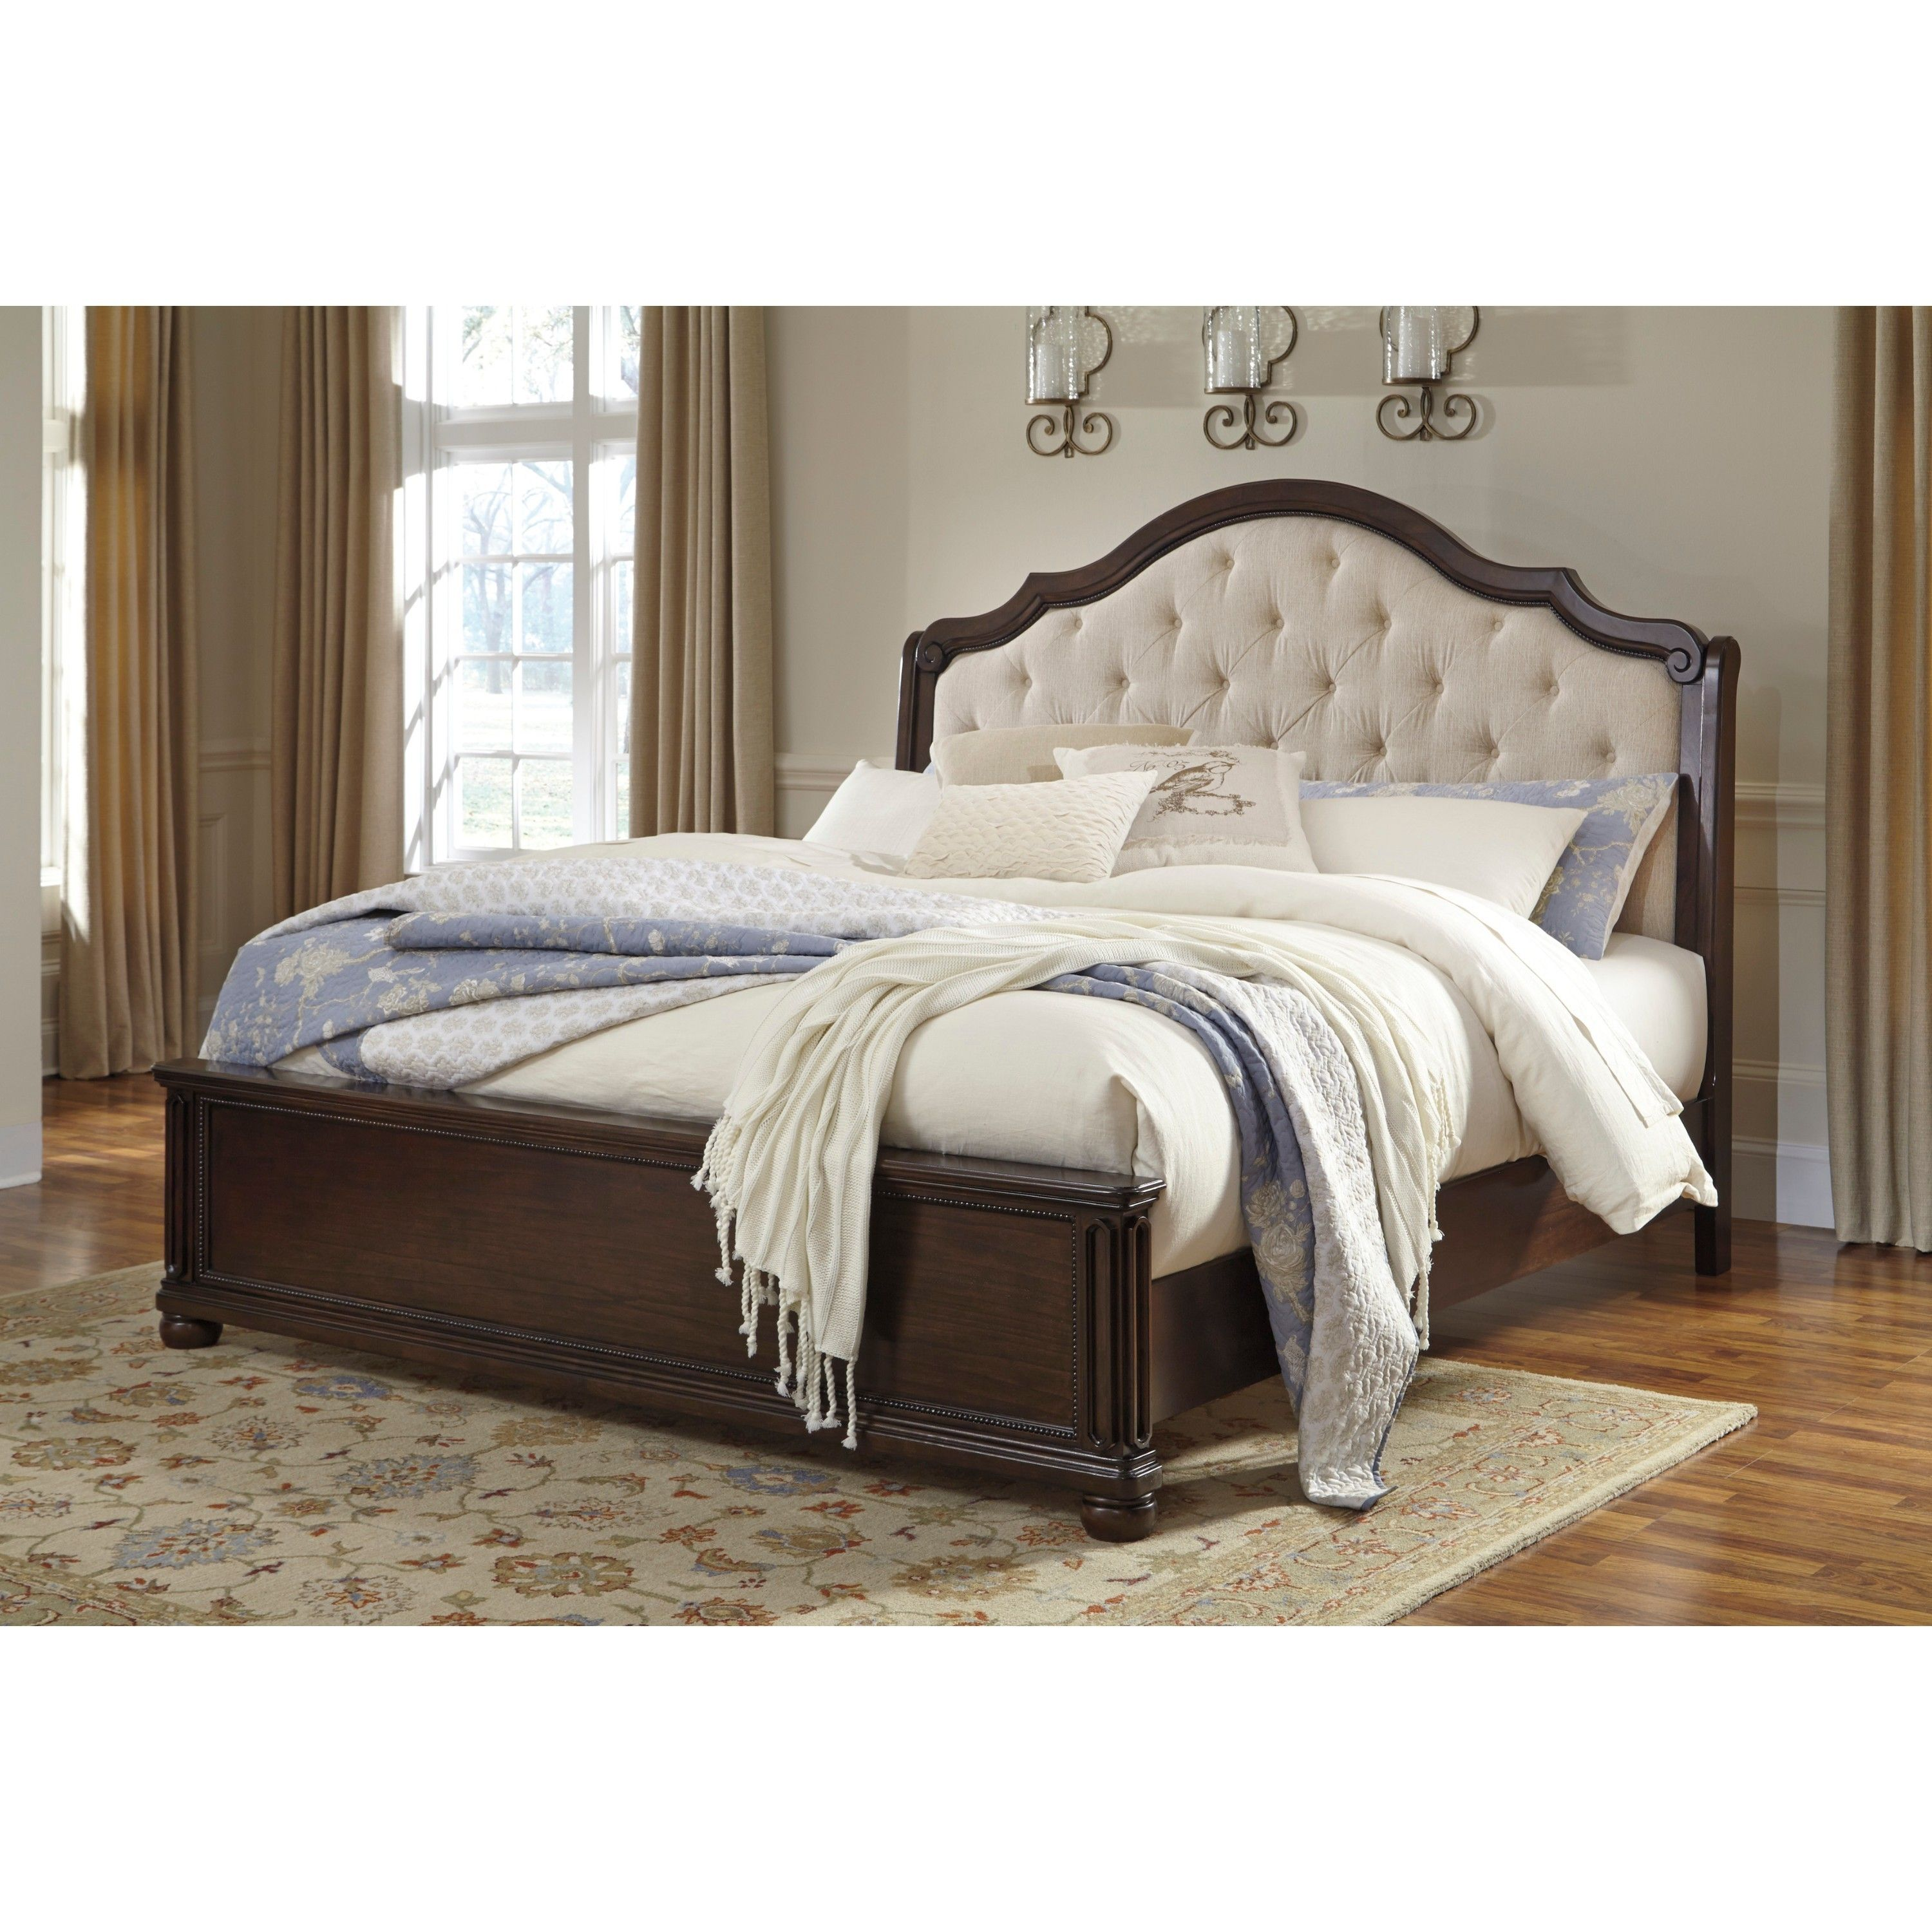 Signature Design By Ashley Moluxy Sleigh Bed (California King Sleigh